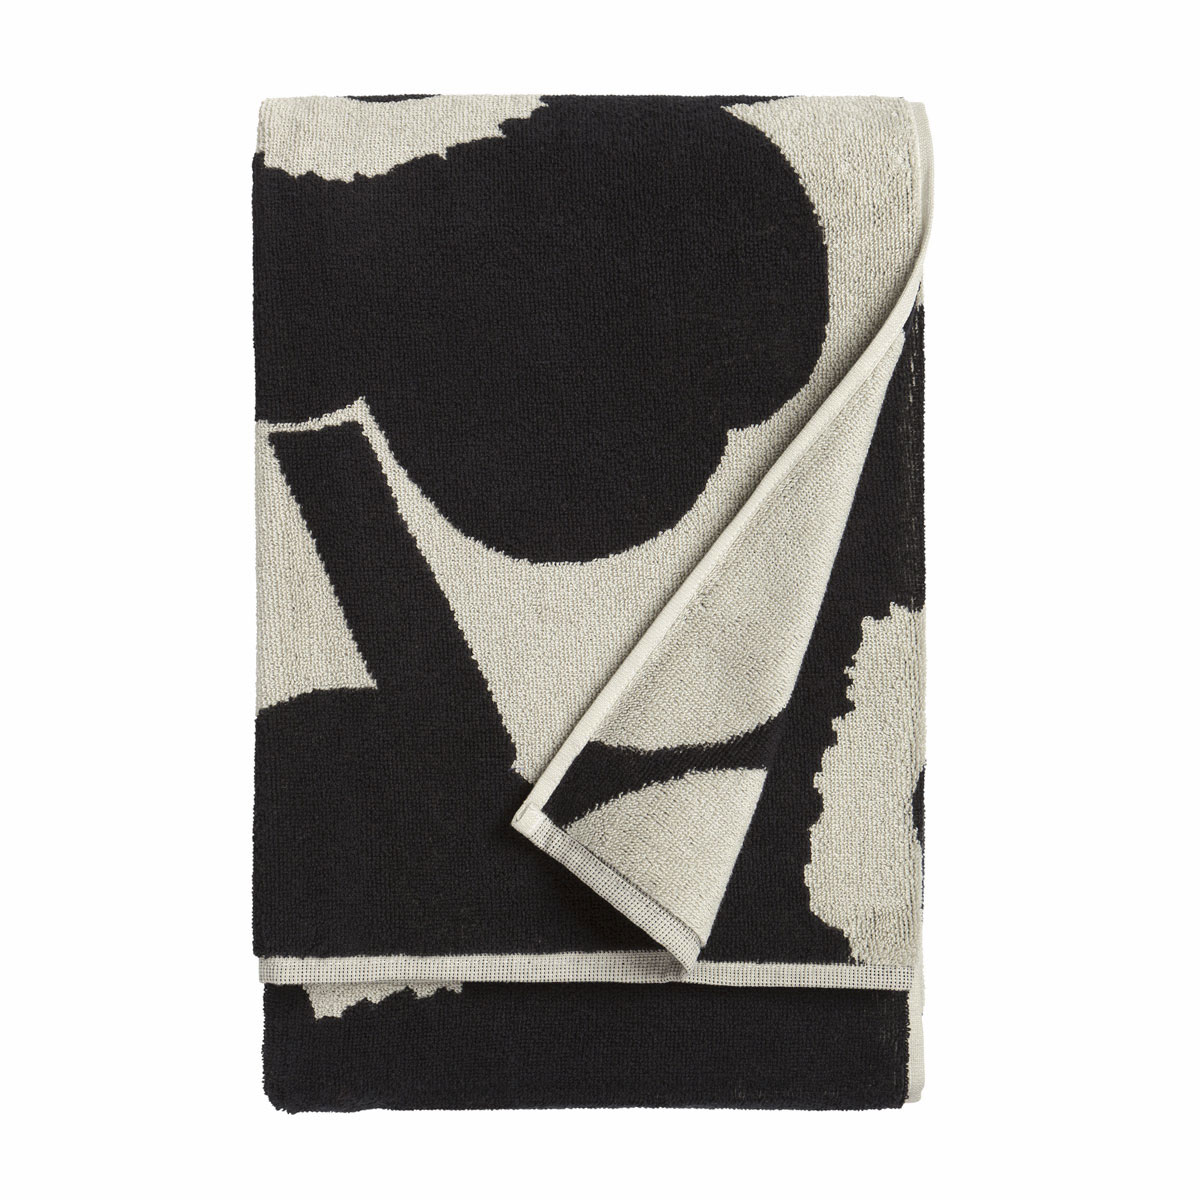 Shop our selection of Black, Bath Towels in the Decor Department at The Home Depot.